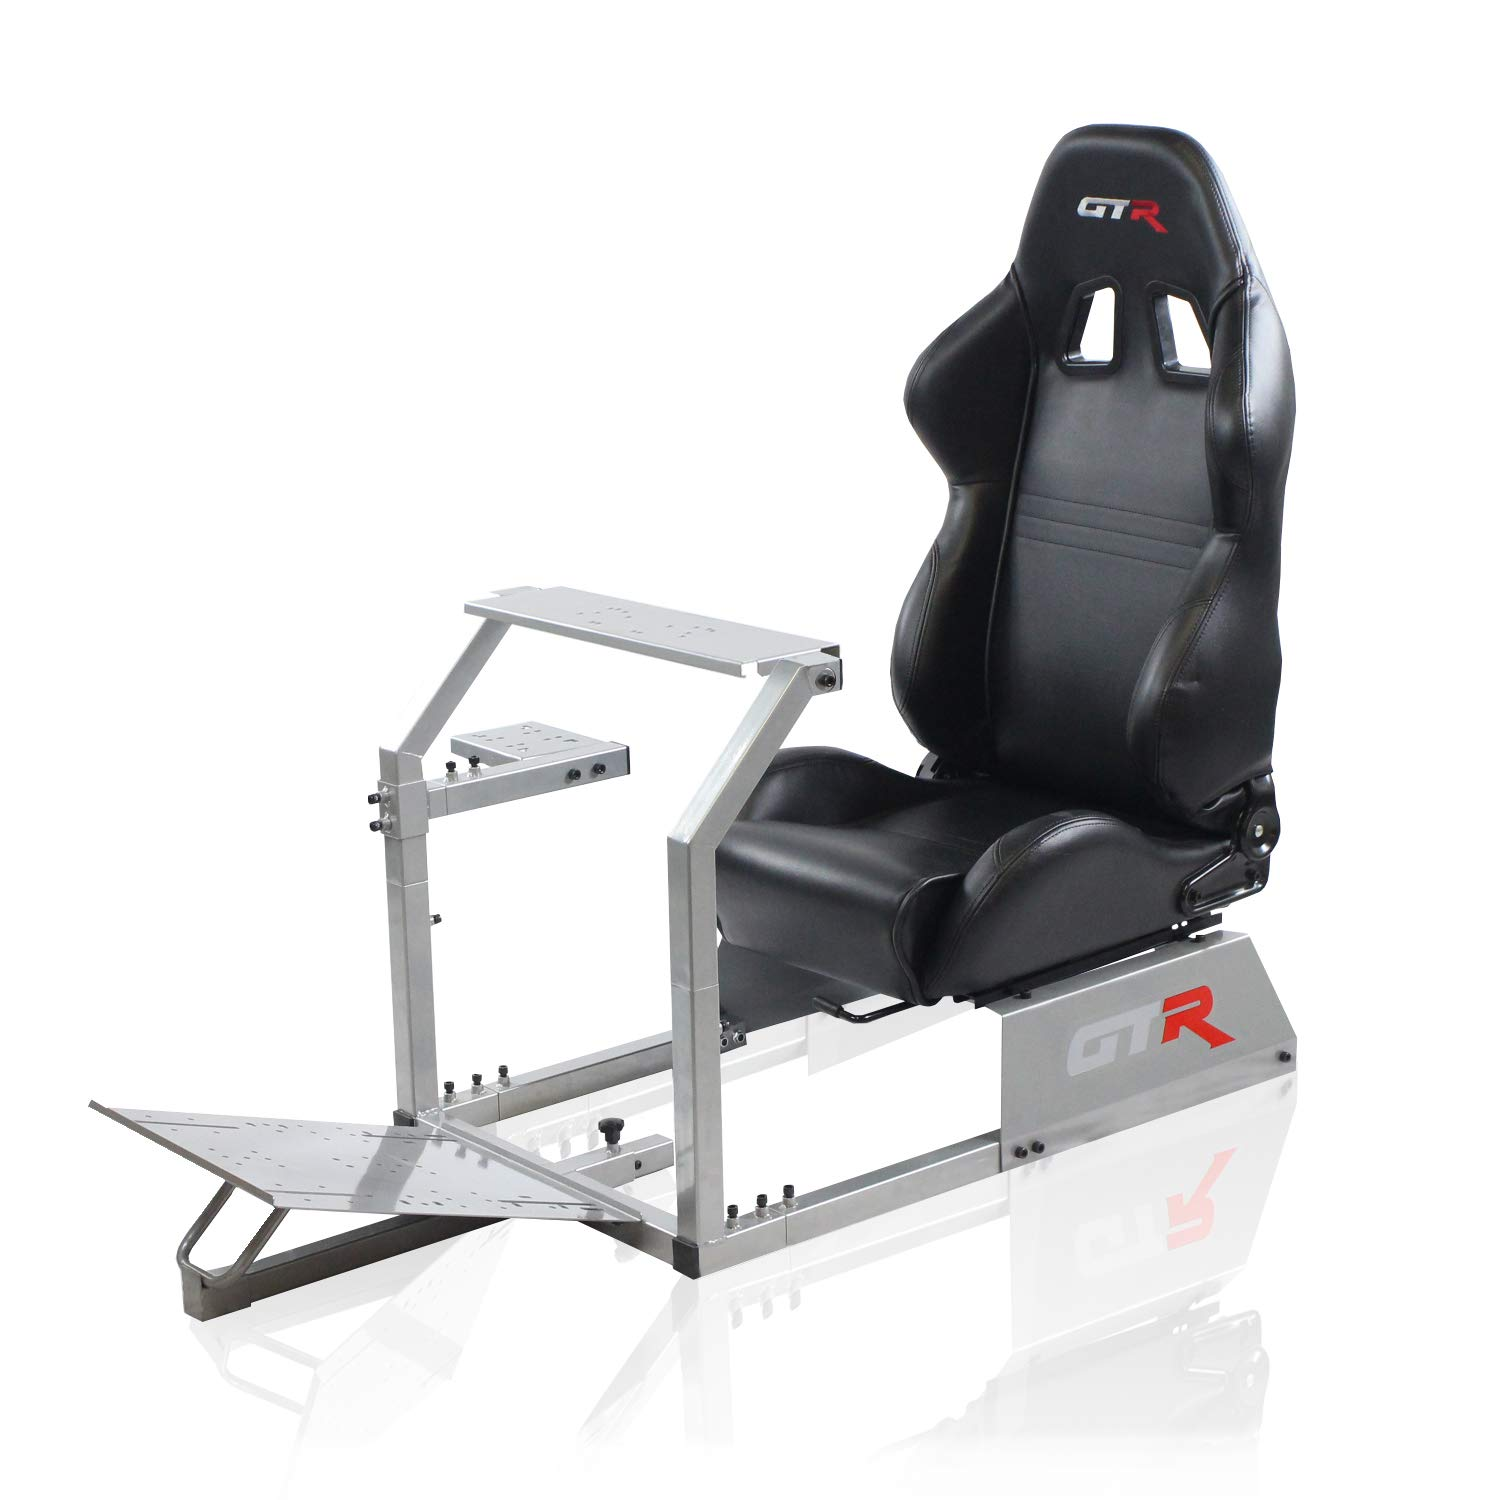 GTR Simulator GTA Model with Real Racing Seat, Driving Simulator Cockpit  Gaming Chair with Gear Shifter Mount